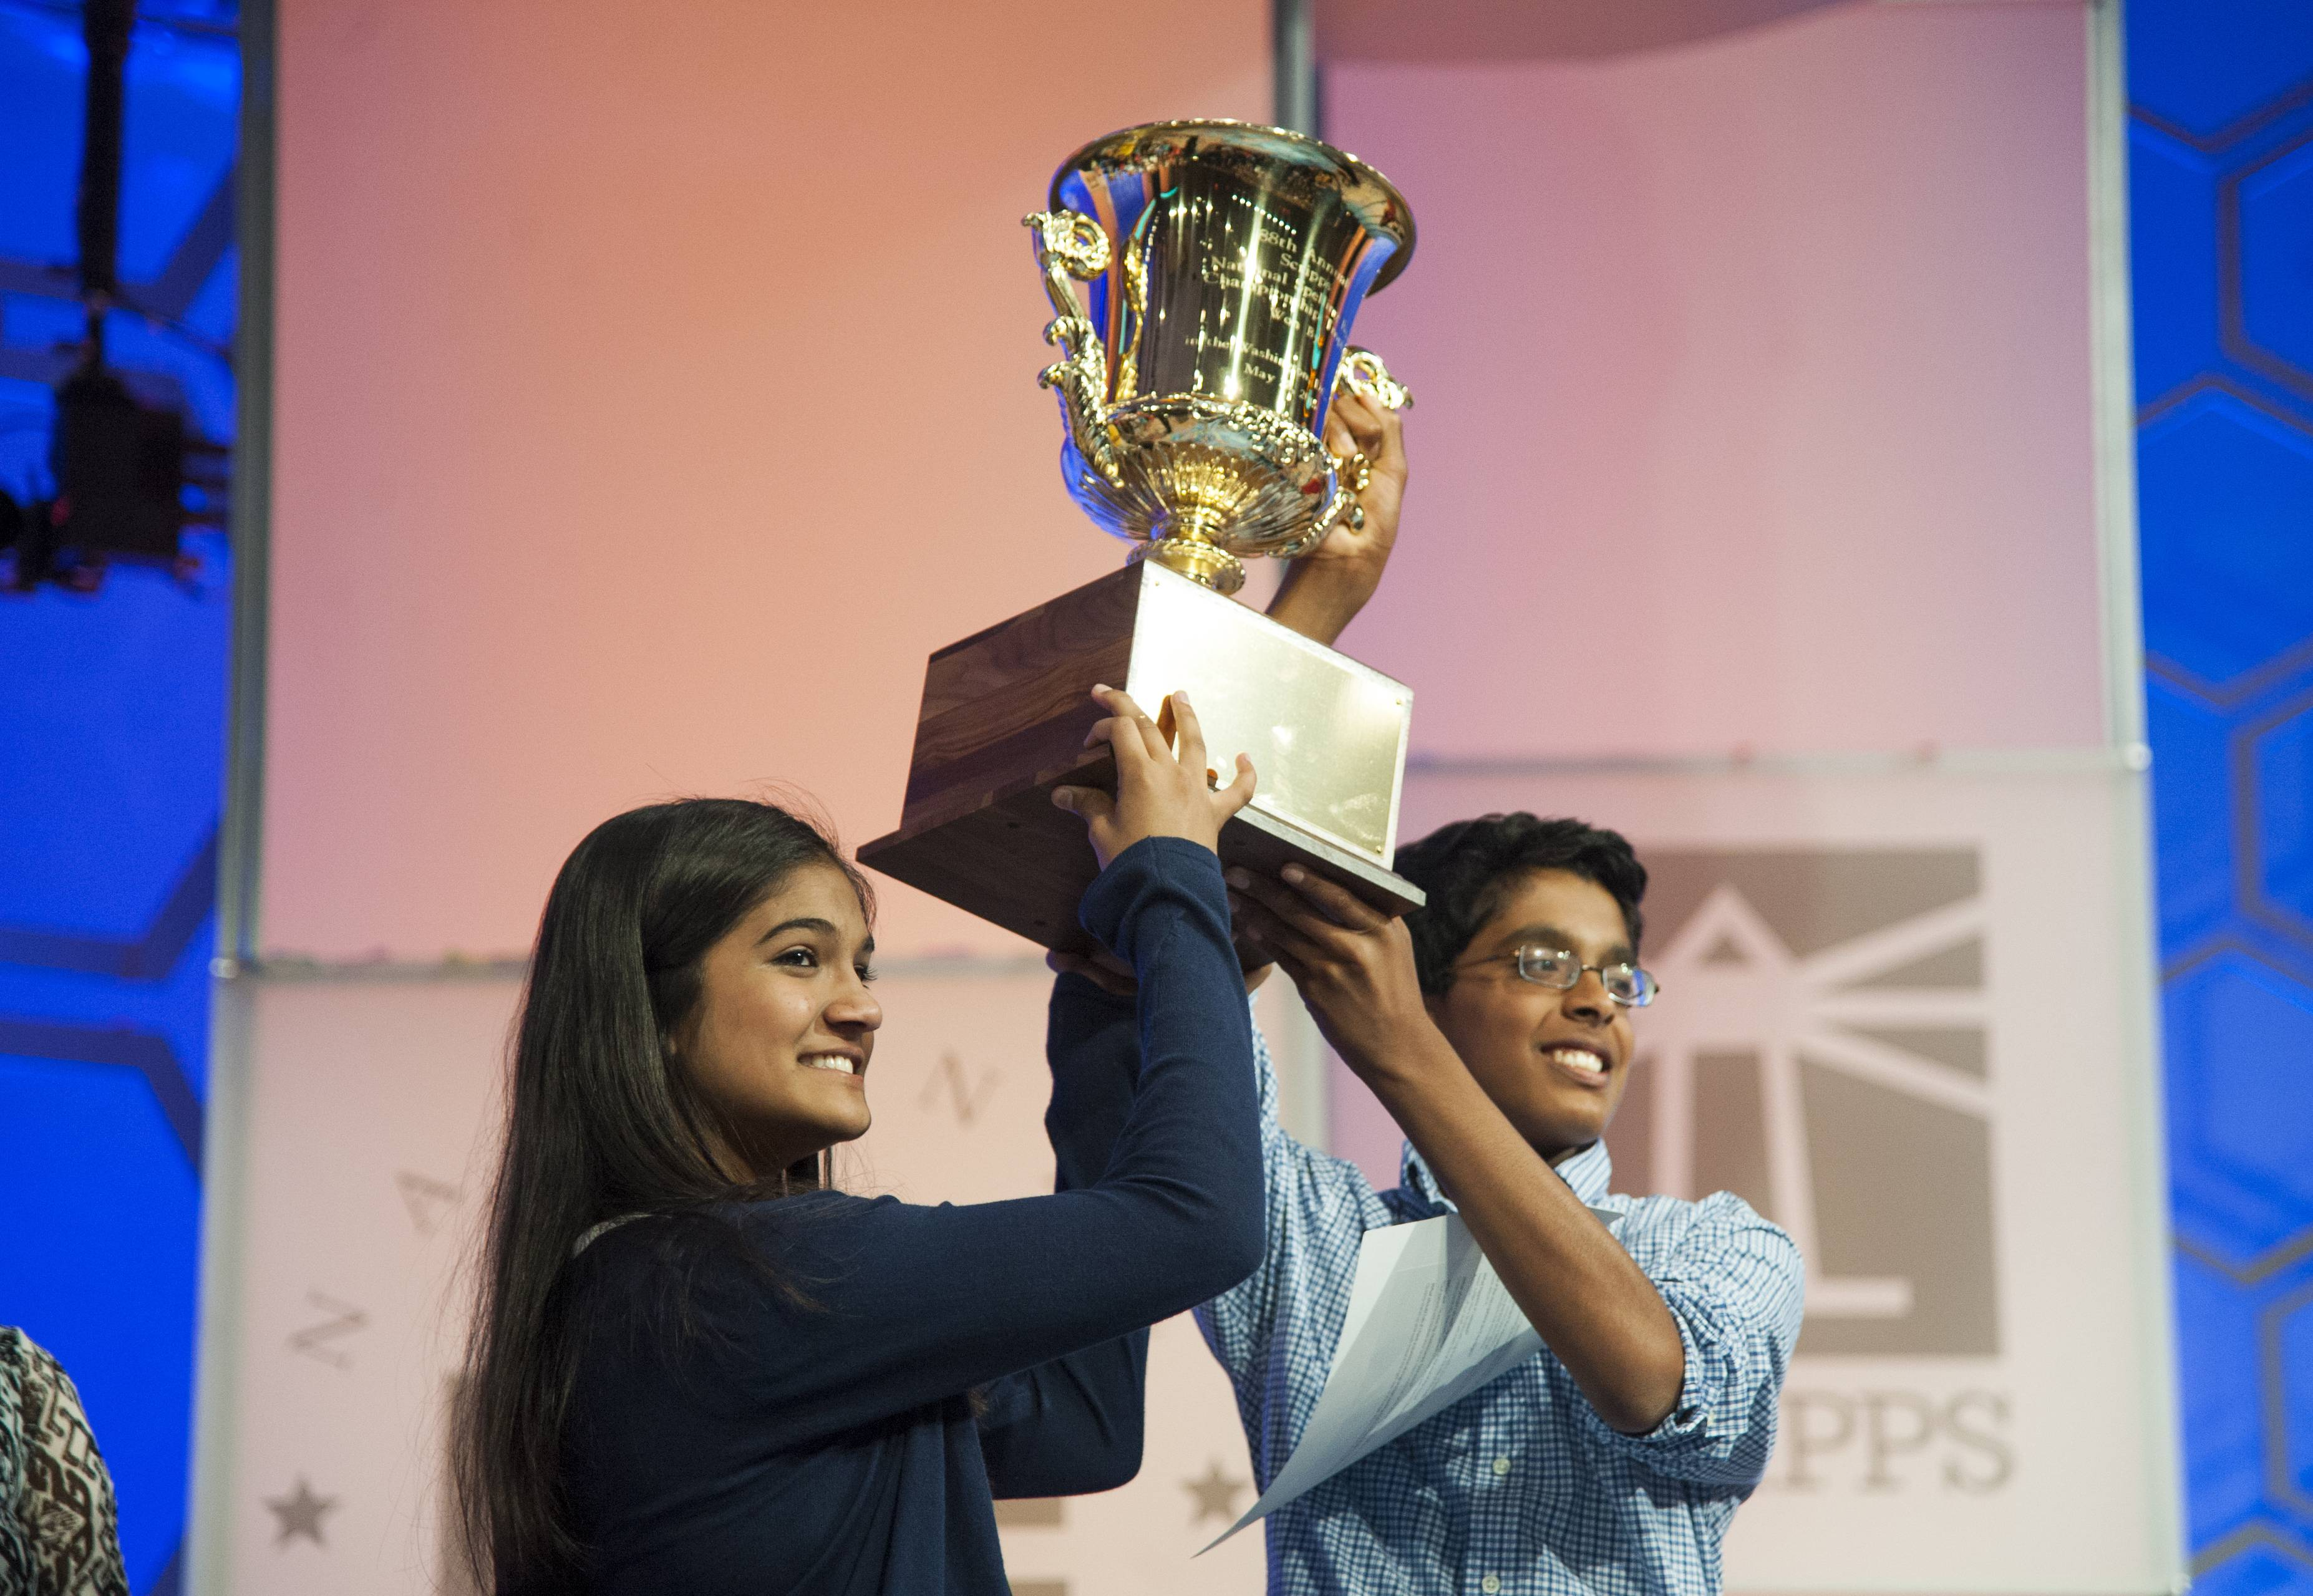 National Spelling Bee co-champions Vanya Shivashankar, 13, and Gokul Venkatachalam, 14, hoist the trophy together in 2015.